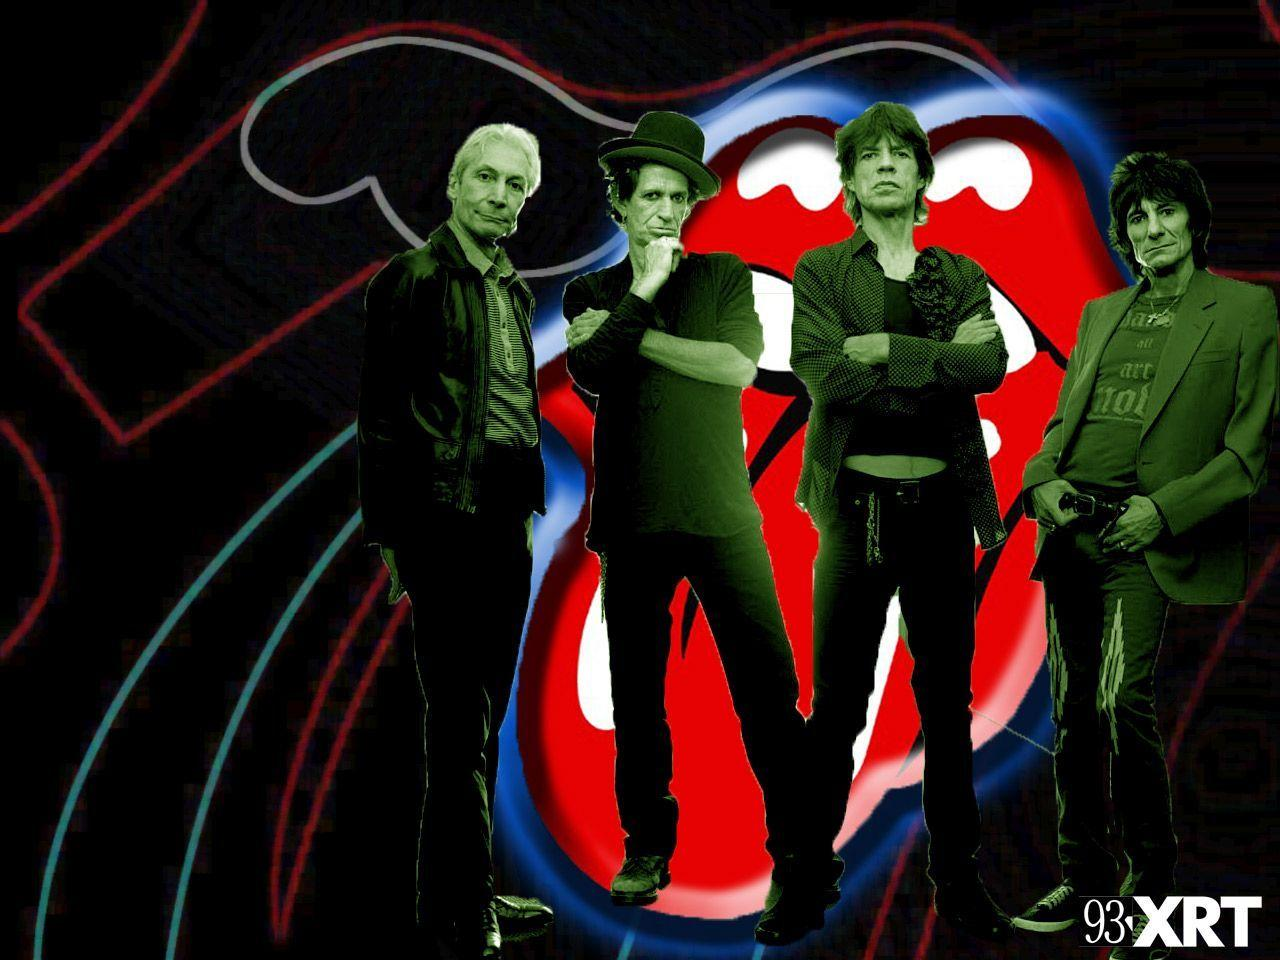 The Rolling Stones HD image